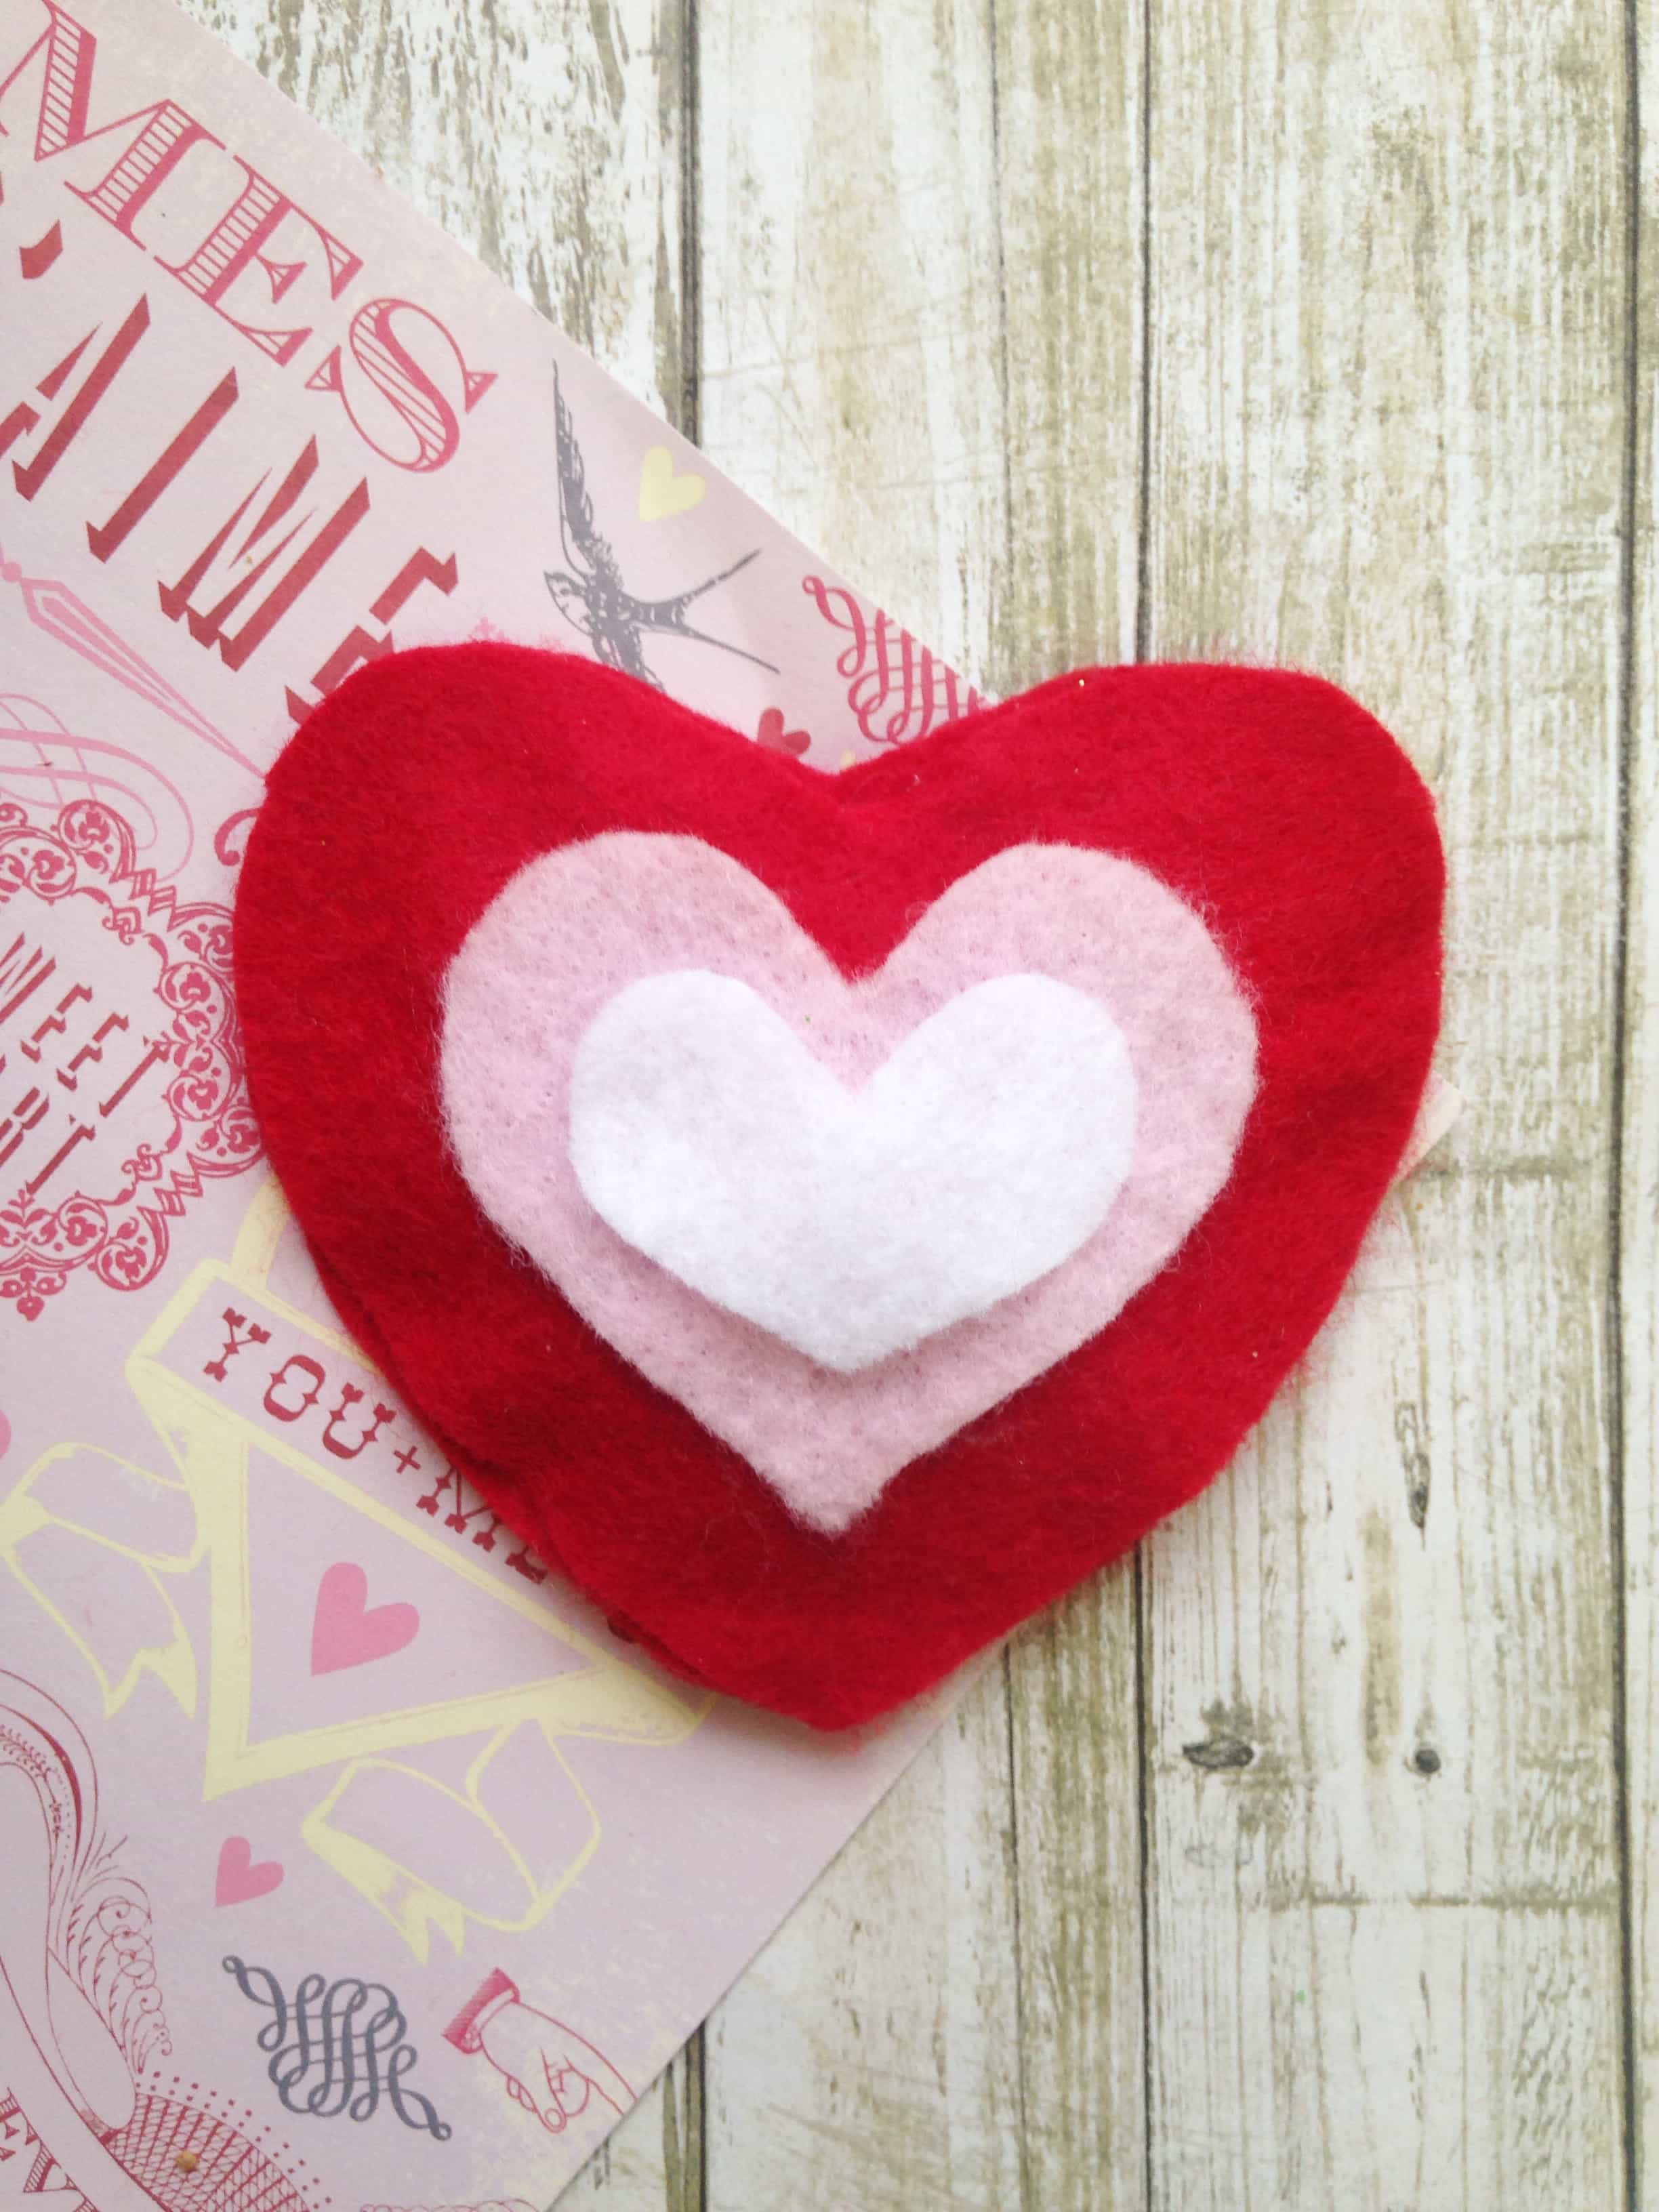 DIY essential oil scented Felt Heart Sachet tutorial